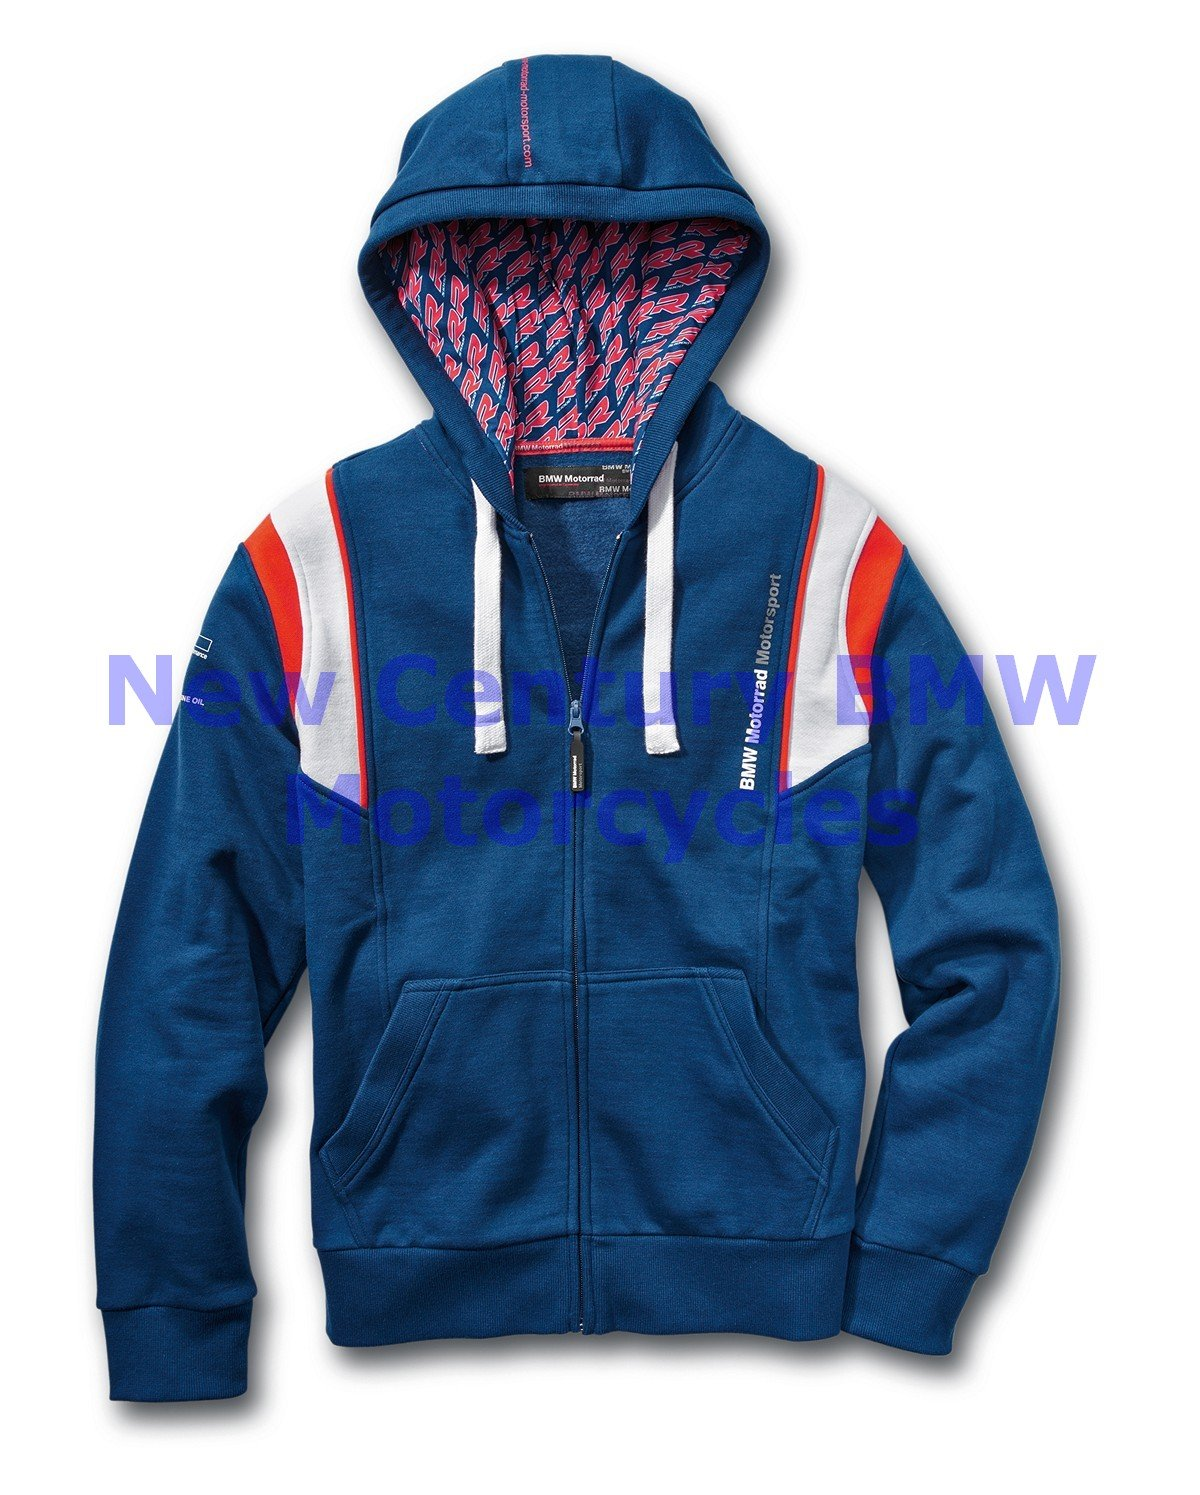 BMW Genuine Motorcycle Unisex Motorsport Hooded Jacket Blue/White/Red XL